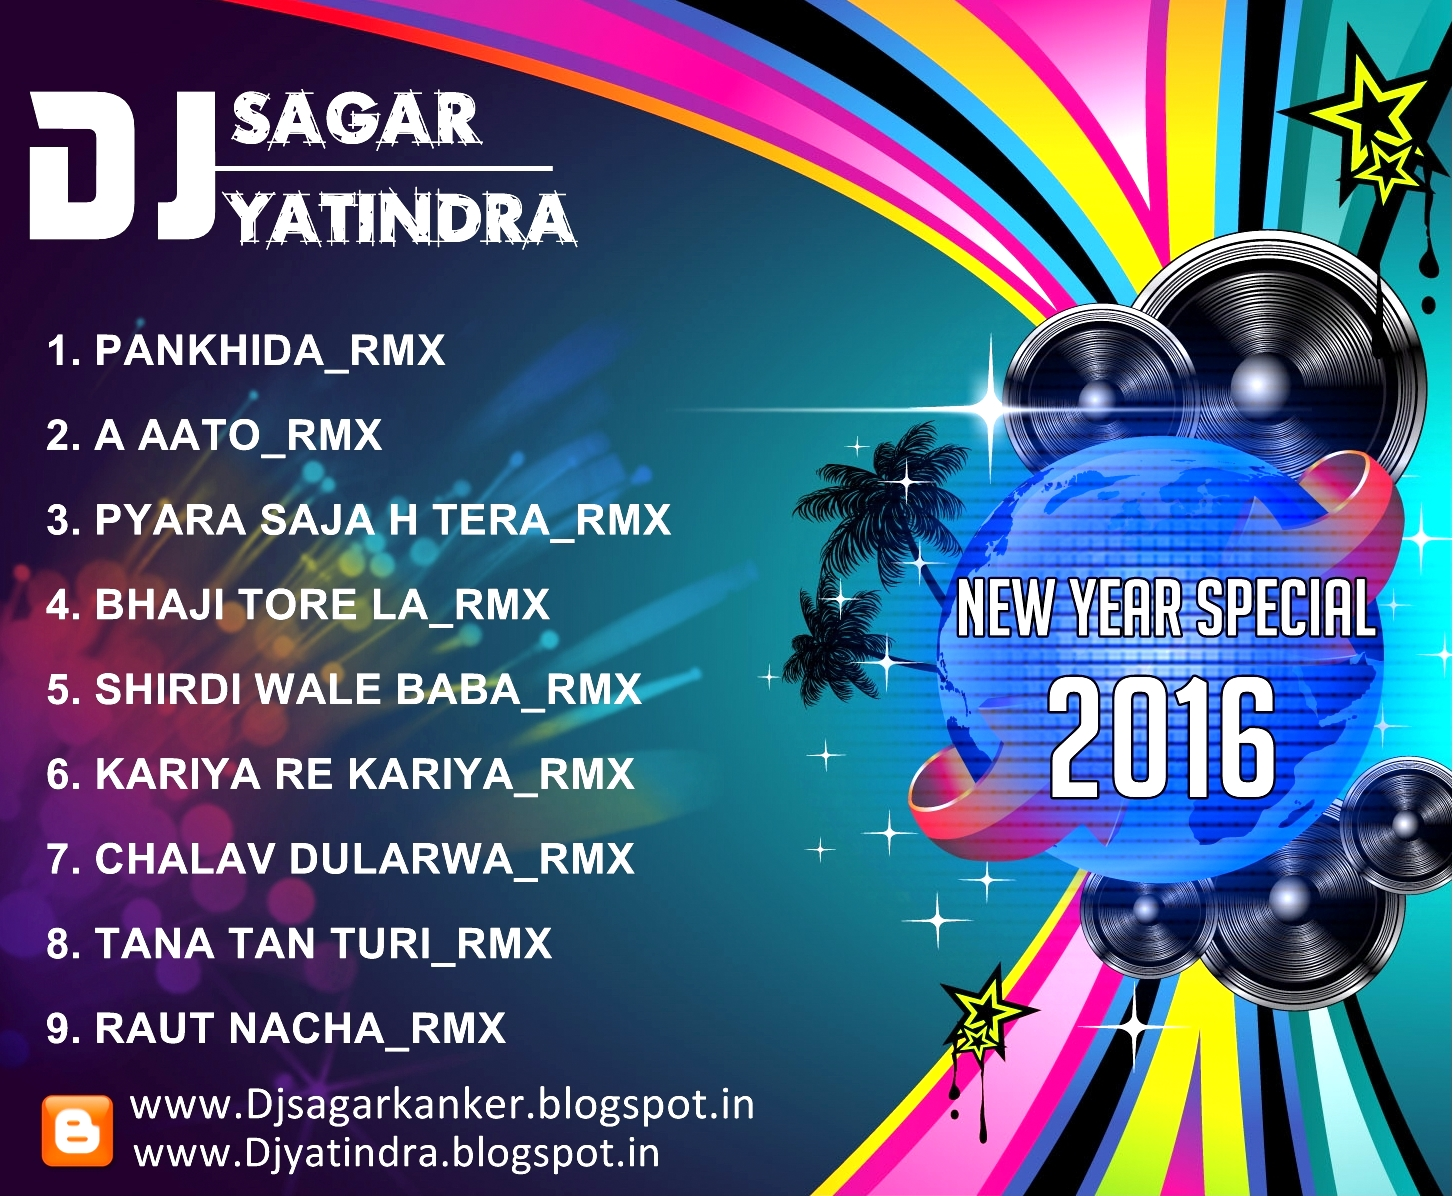 NEW YEAR SPECIAL - dj sagar ~ Dj Sagar club